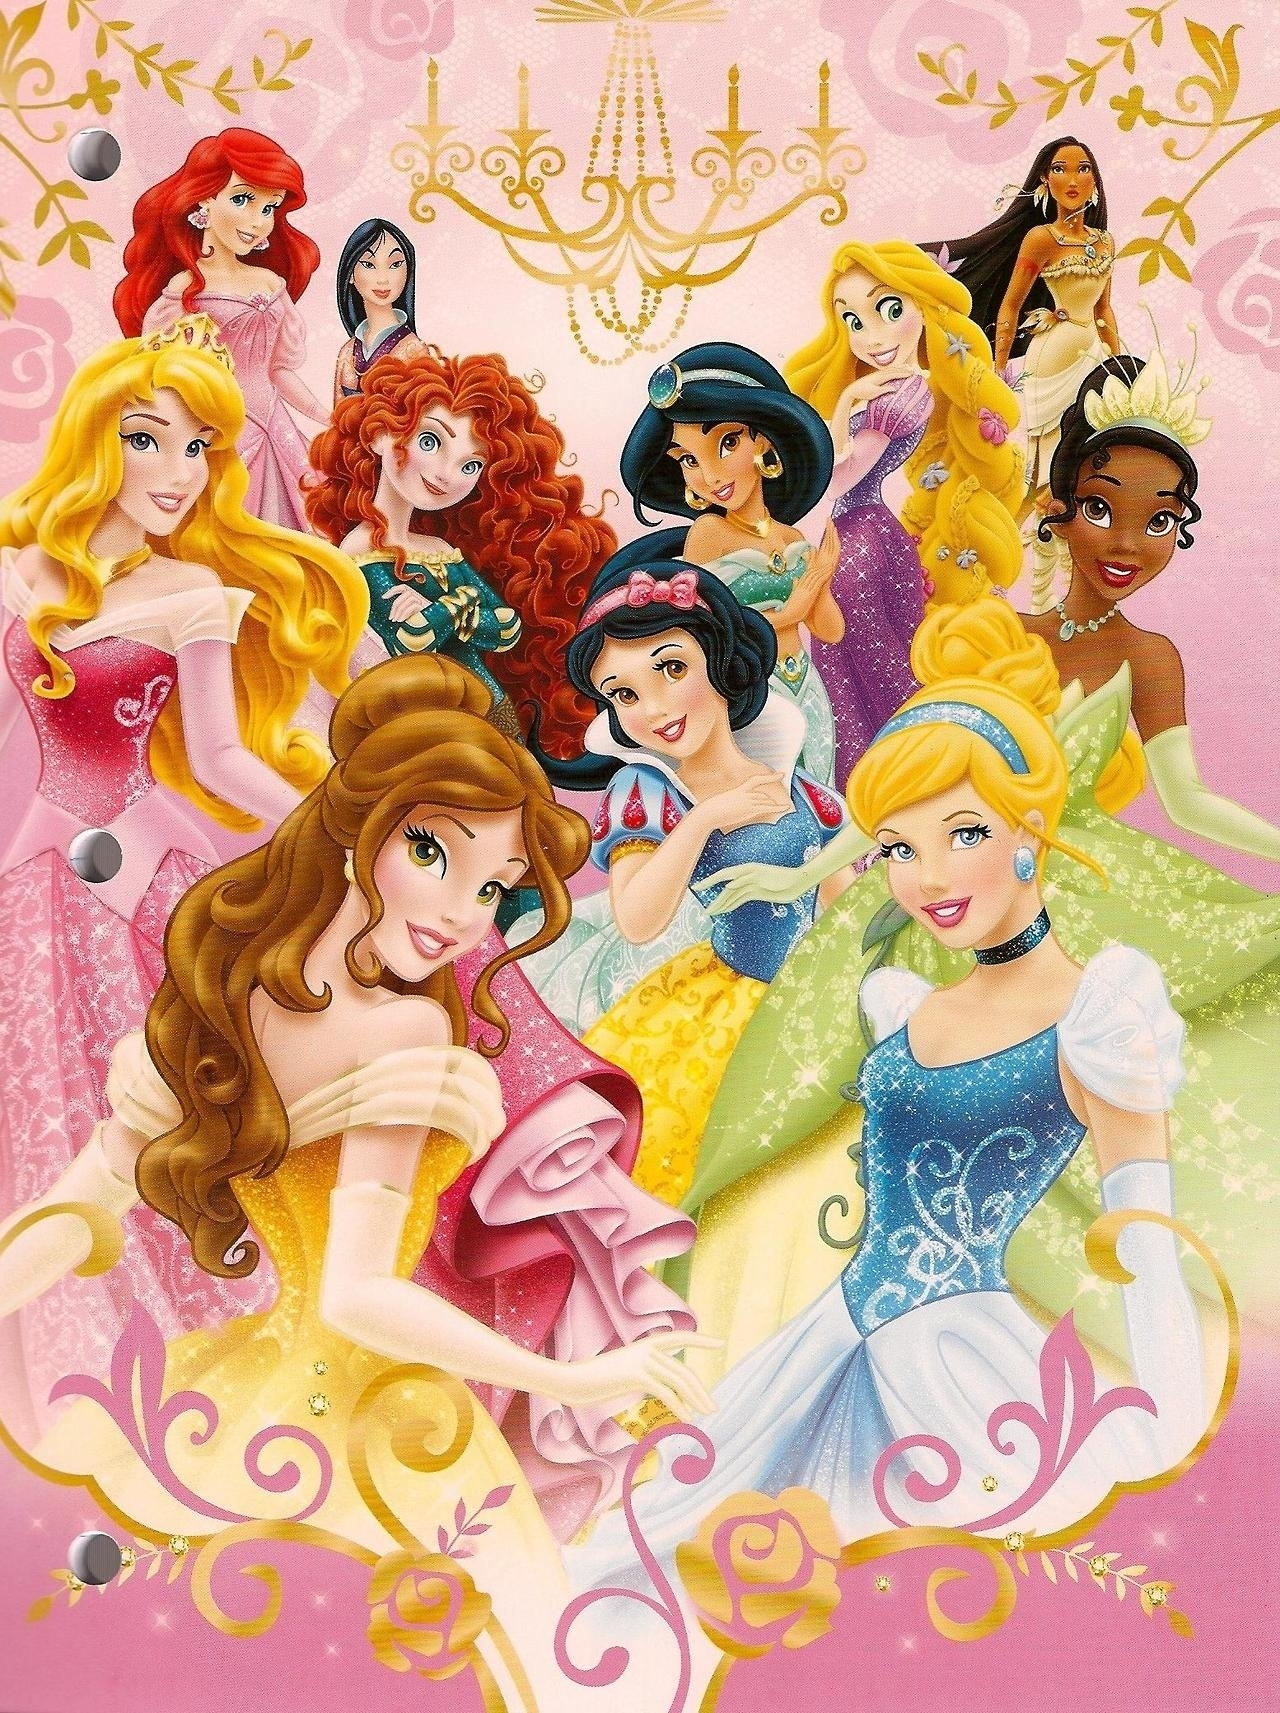 10 Best Disney Princess Images Free Download Full Hd 1920 1080 For